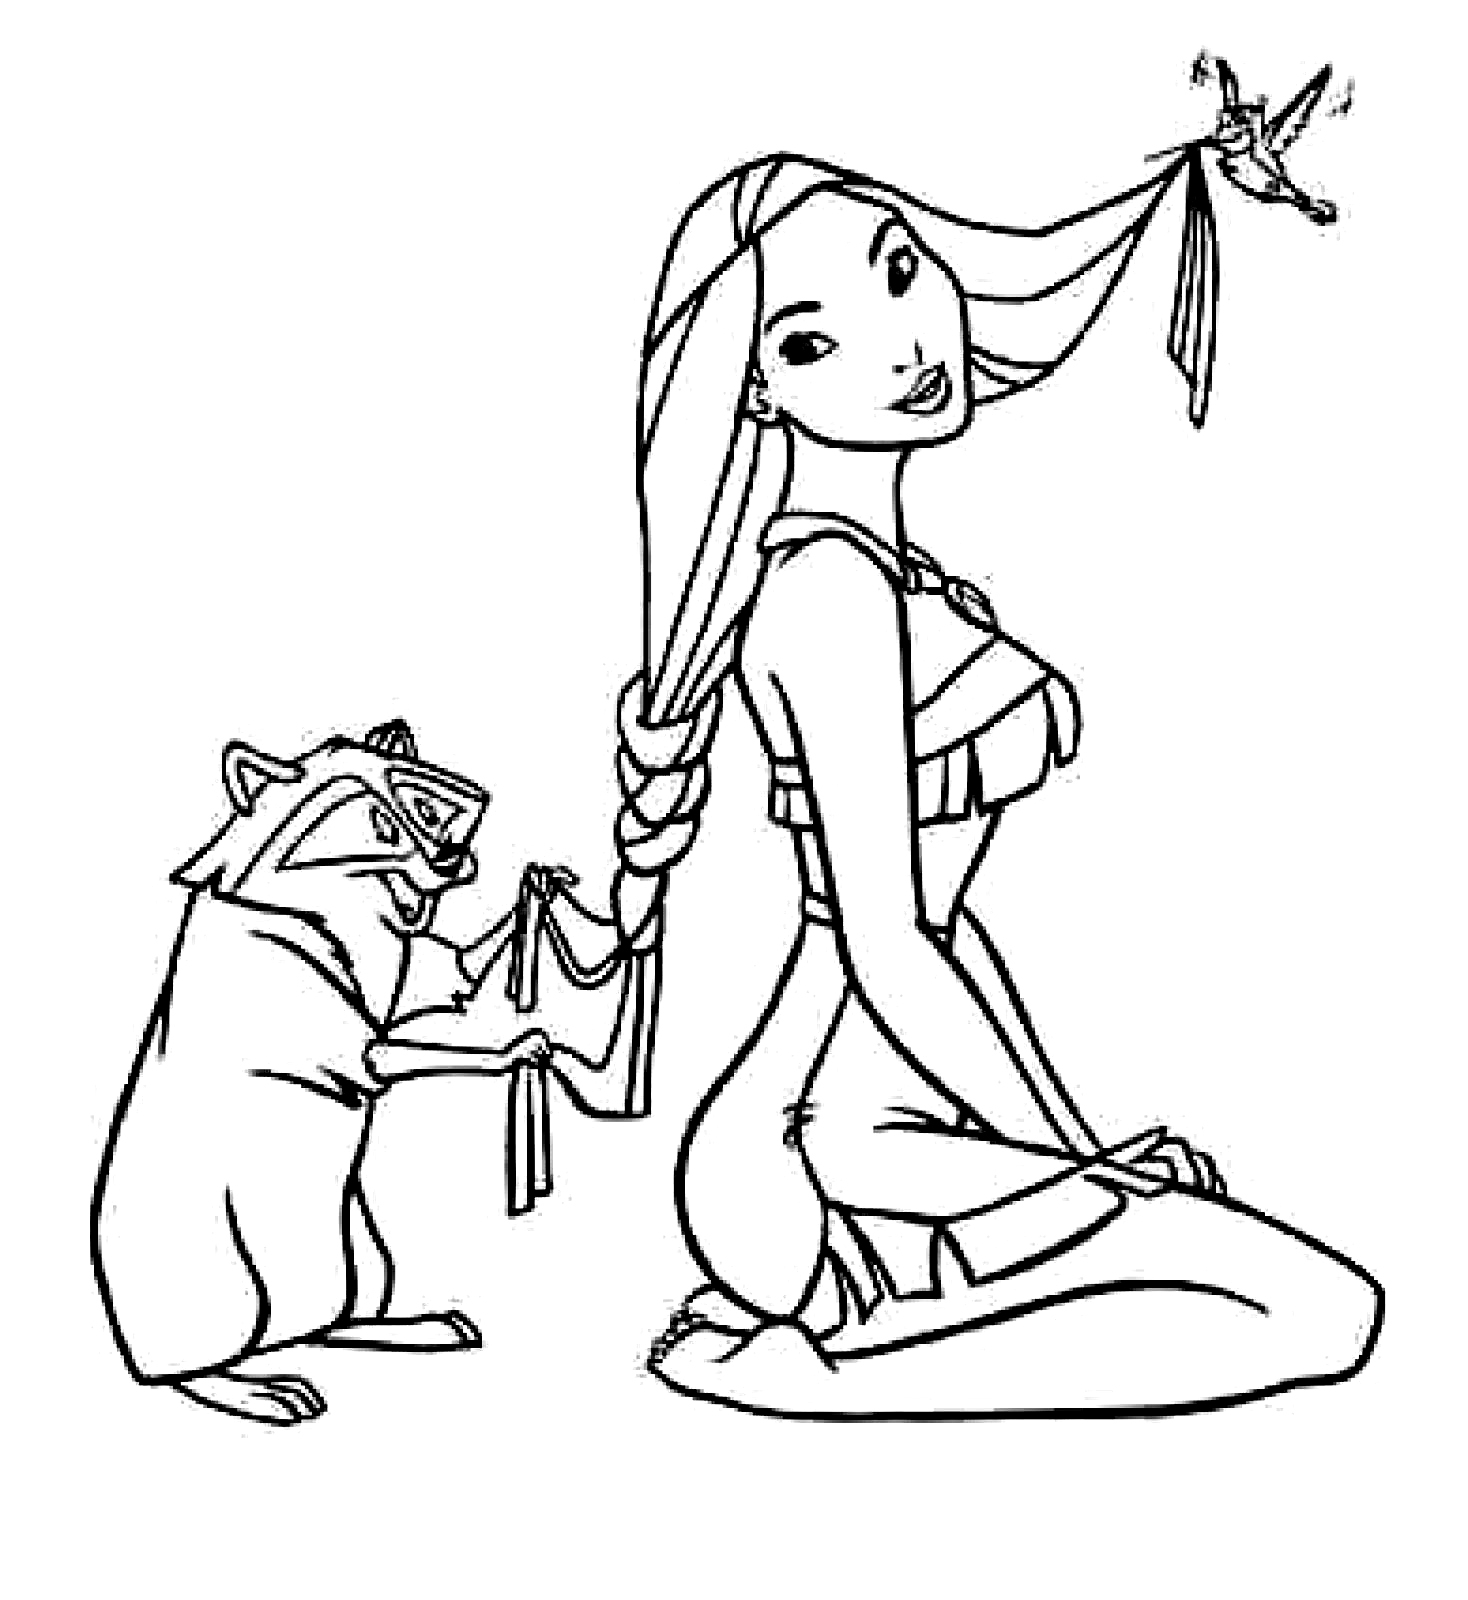 pochahauntus coloring pages - photo#12